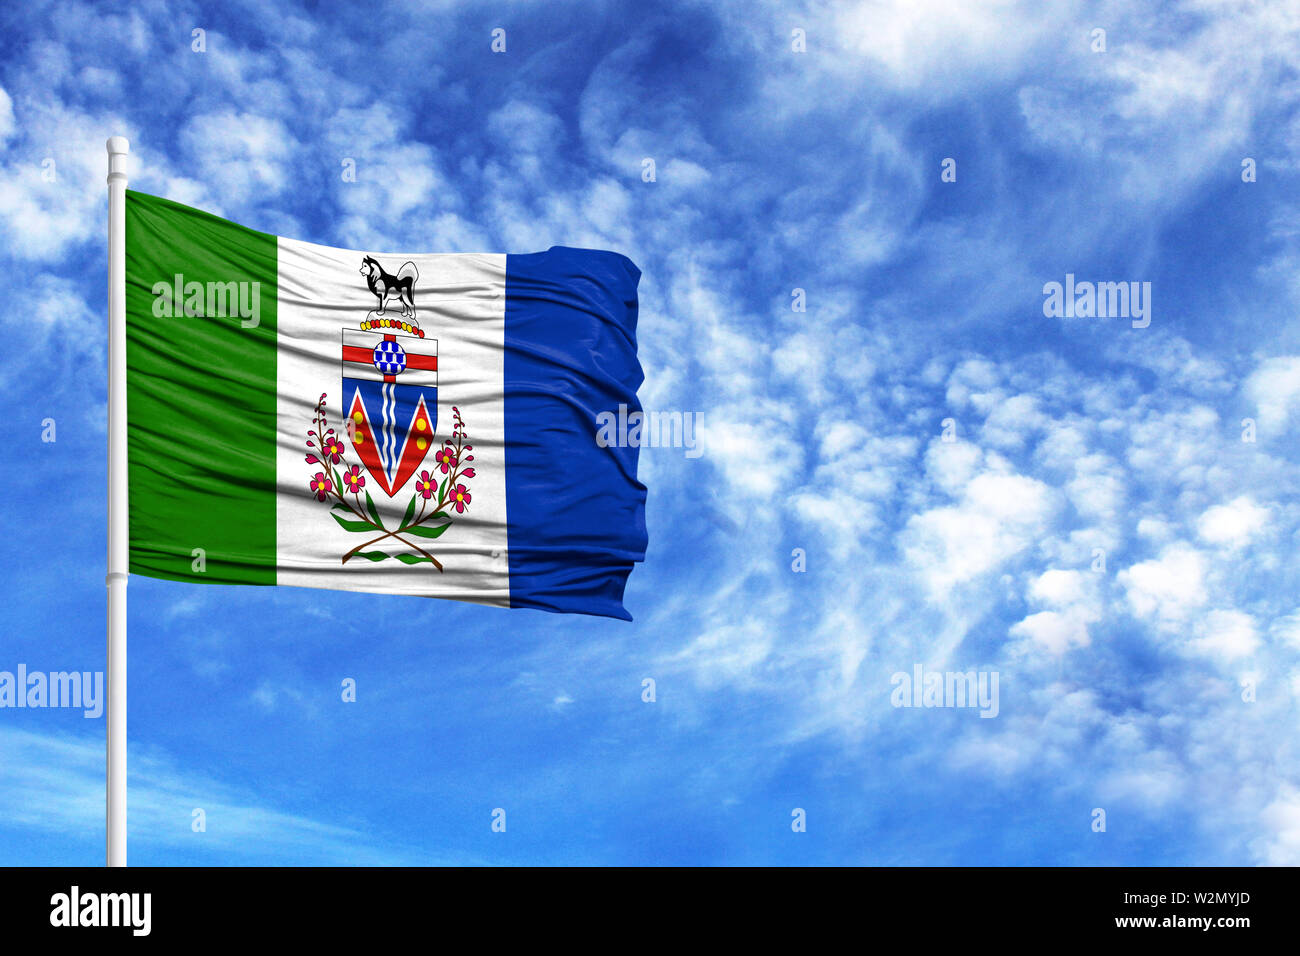 National flag of Yukon on a flagpole in front of blue sky - Stock Image